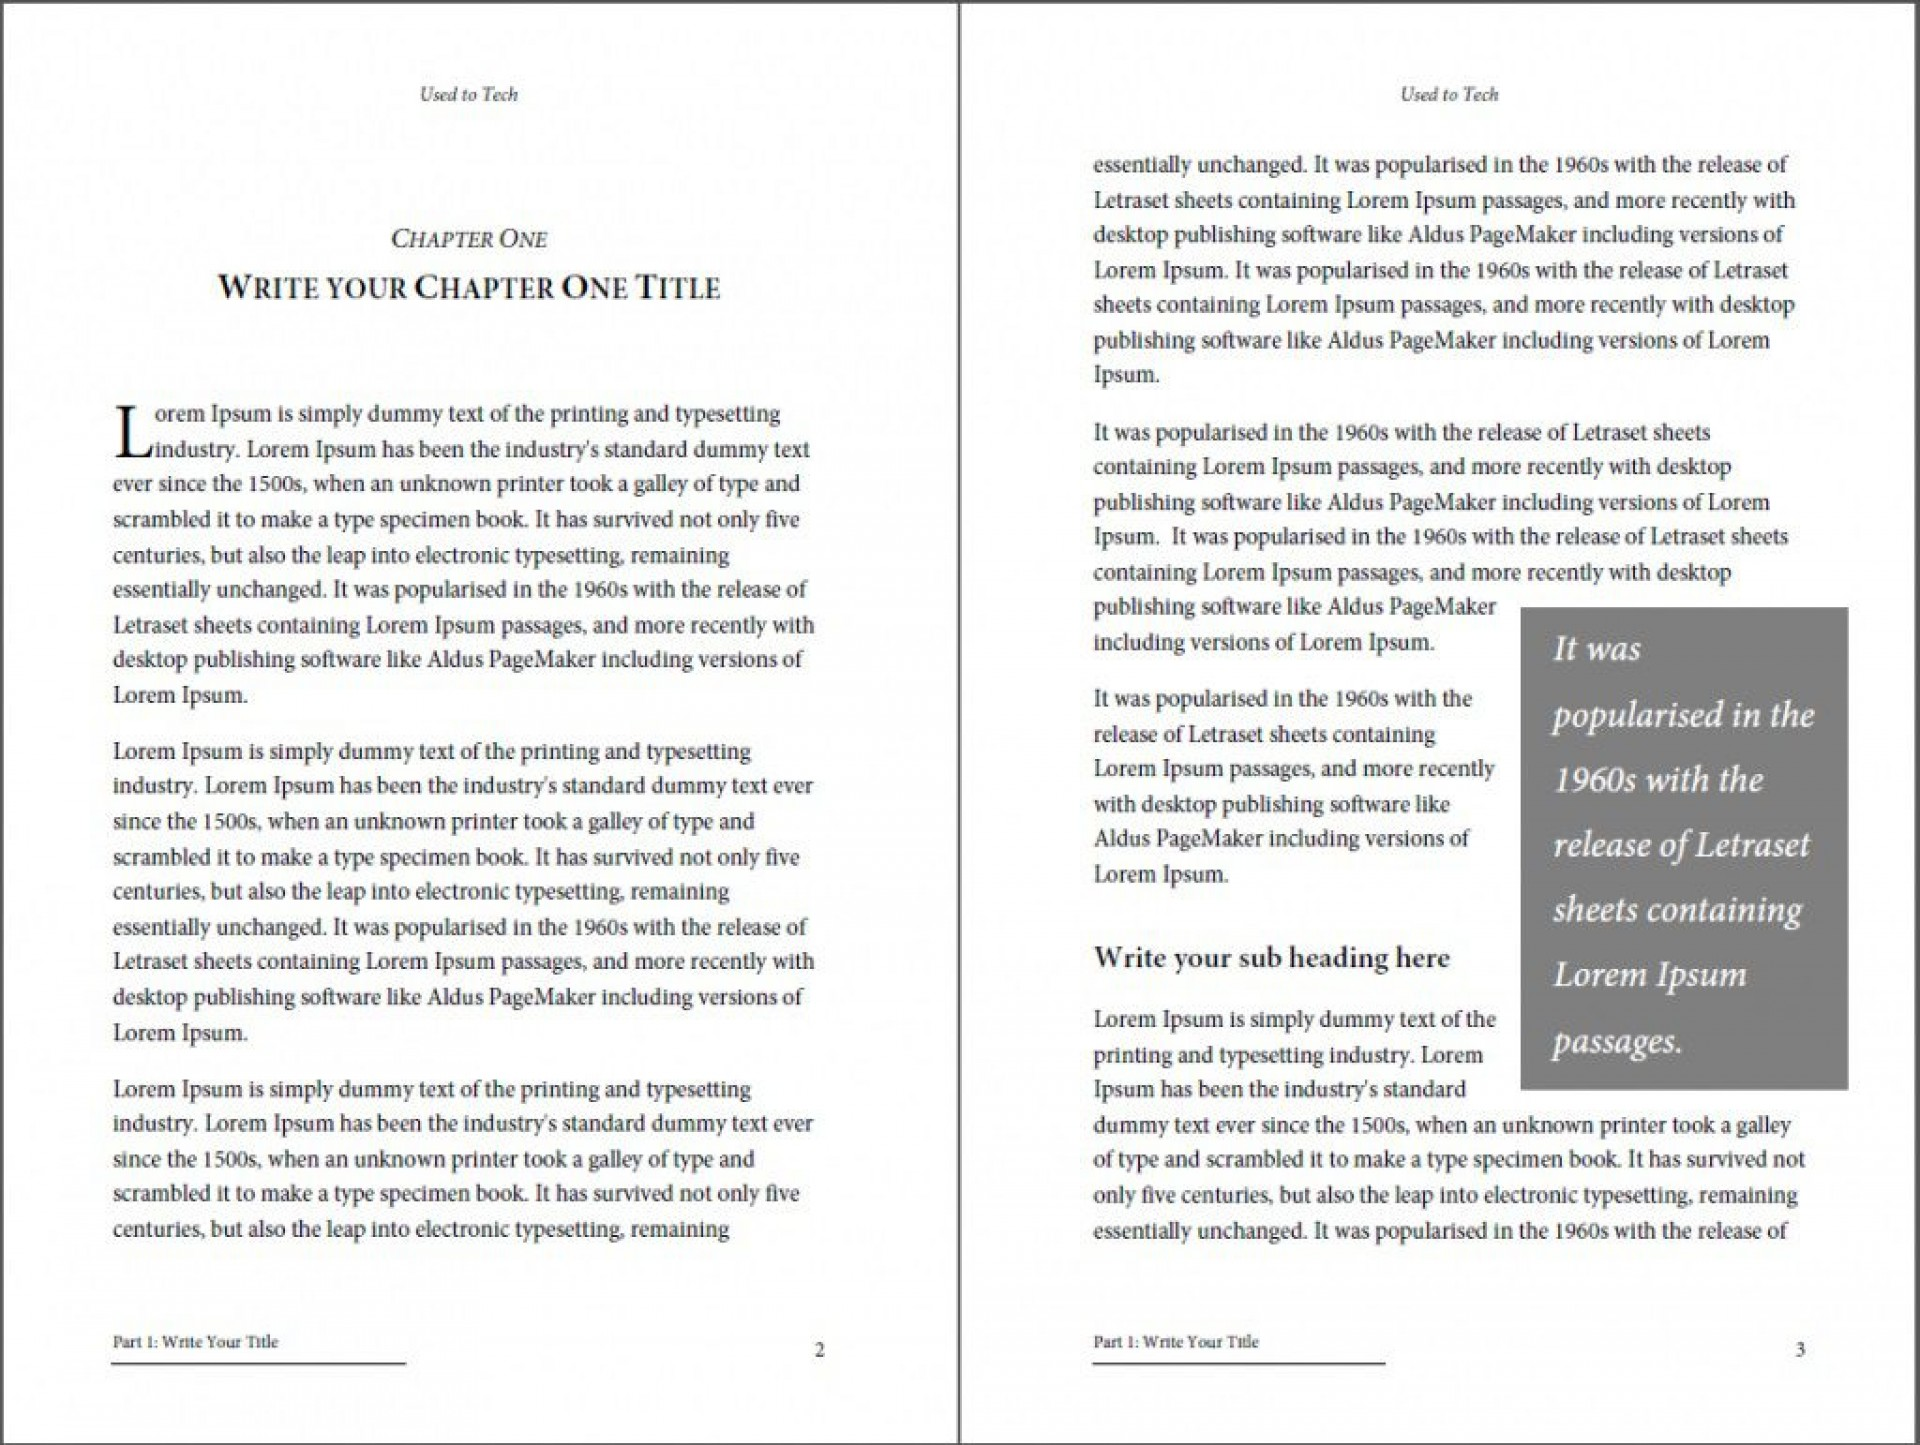 000 Fascinating Book Template Microsoft Word High Resolution  Addres Free Outline Comic Script1920